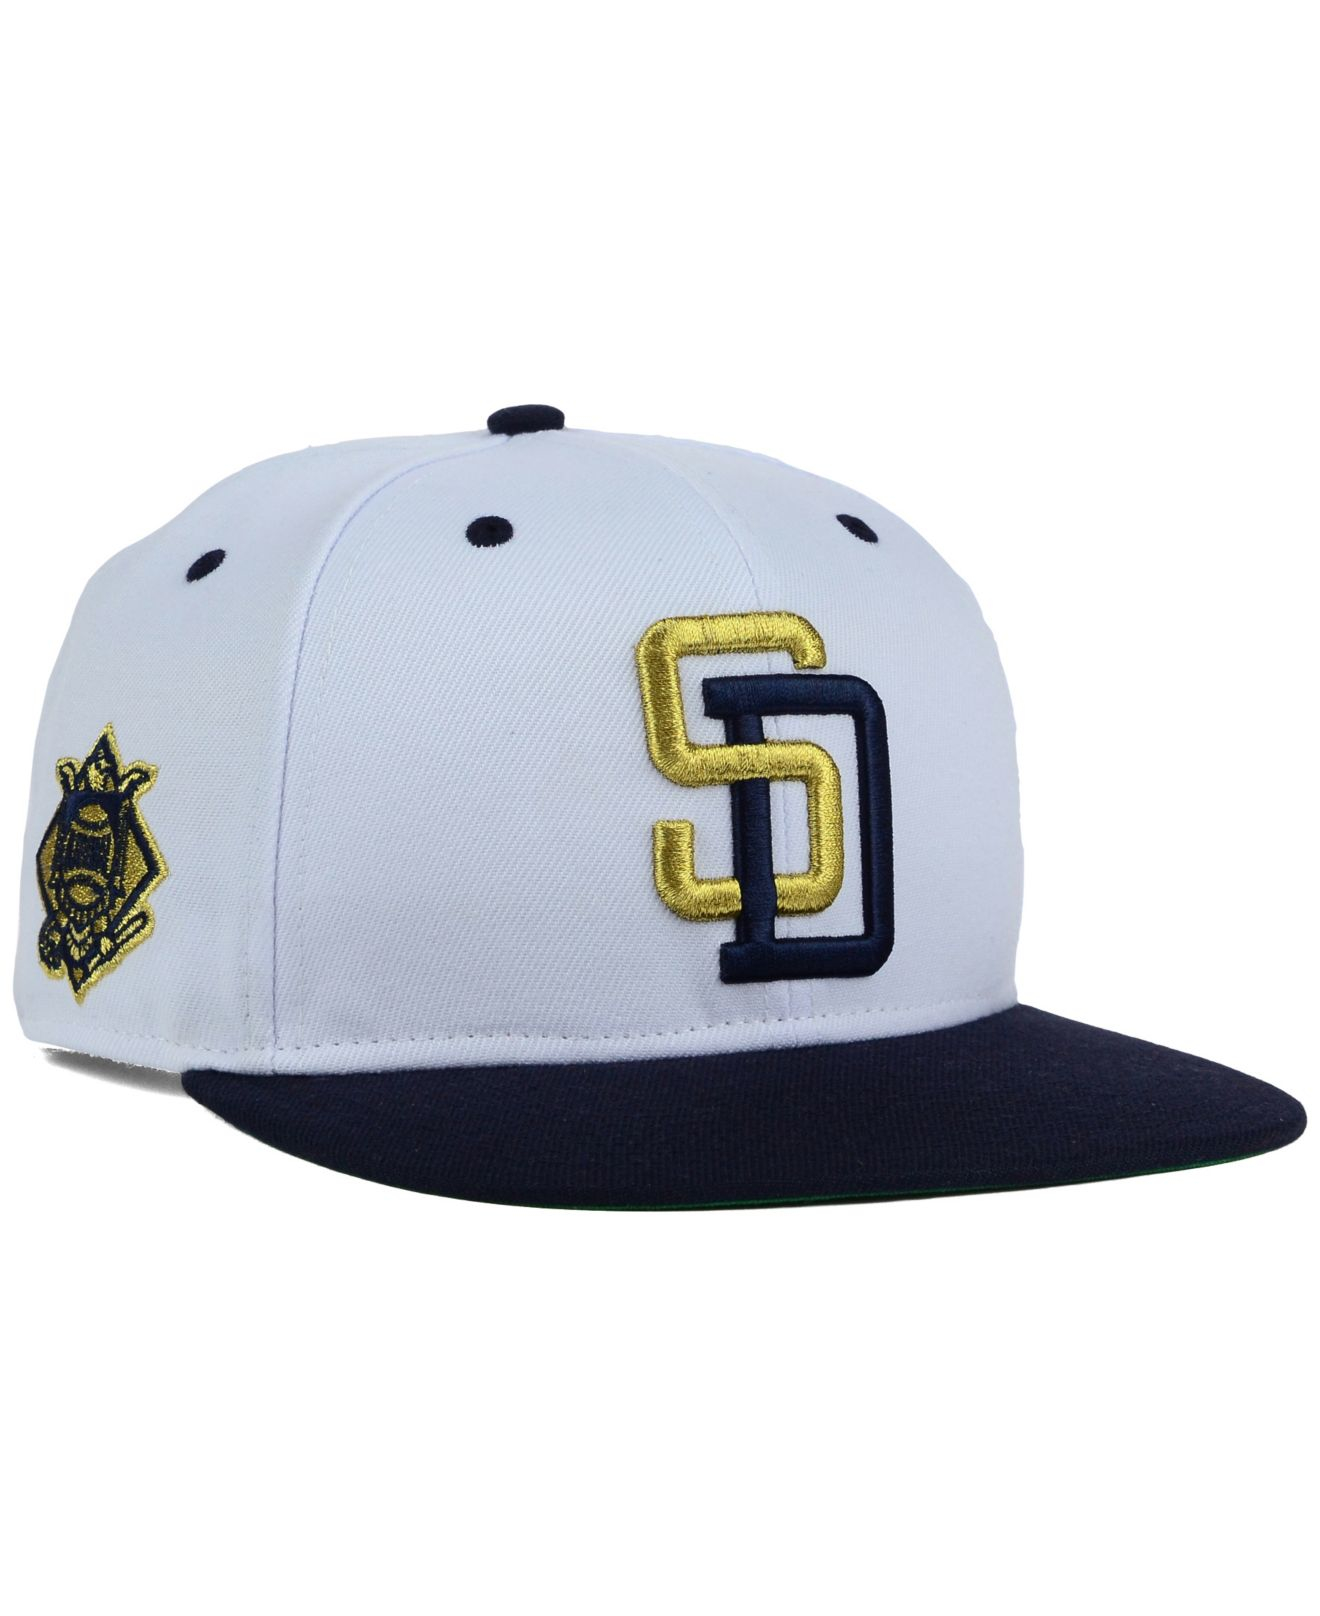 reputable site ad0ba 4f5ae ... sale lyst 47 brand san diego padres gold rush snapback cap in black for  men ad7e5